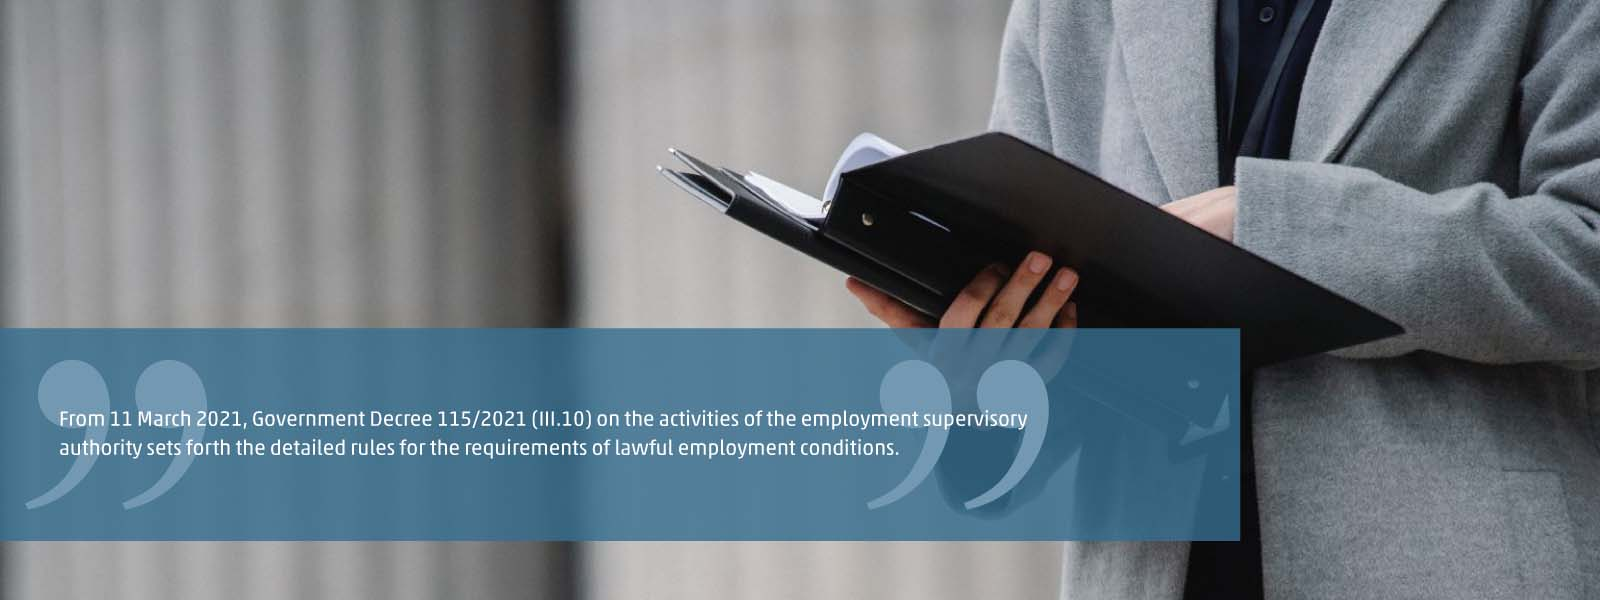 lawful employment conditions